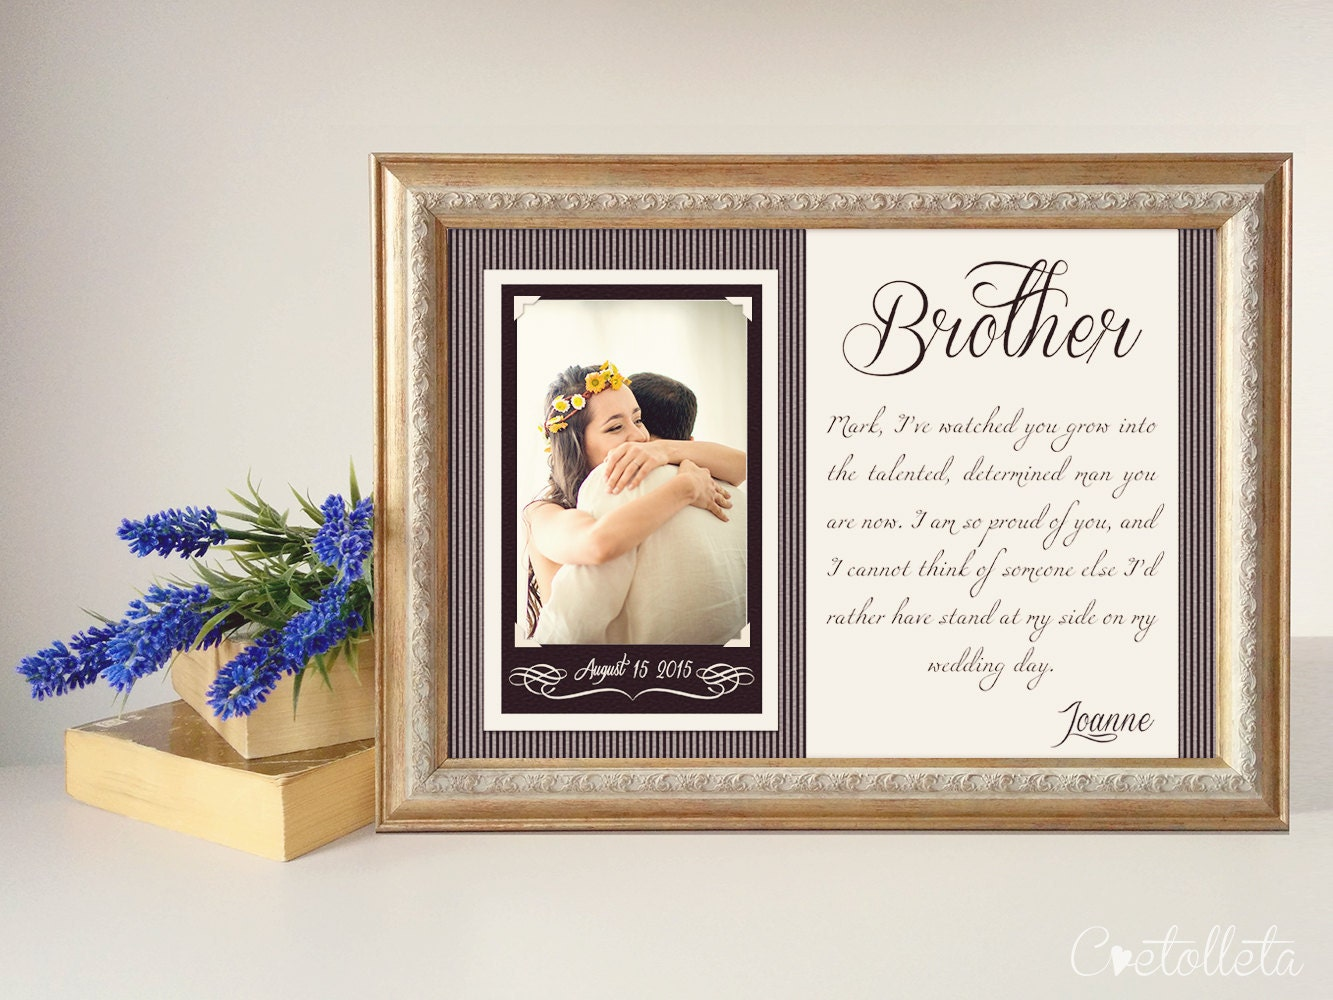 Good Wedding Gifts For Friends: Brother Wedding Gift Best Friend Thank You Gift By Cvetolleta